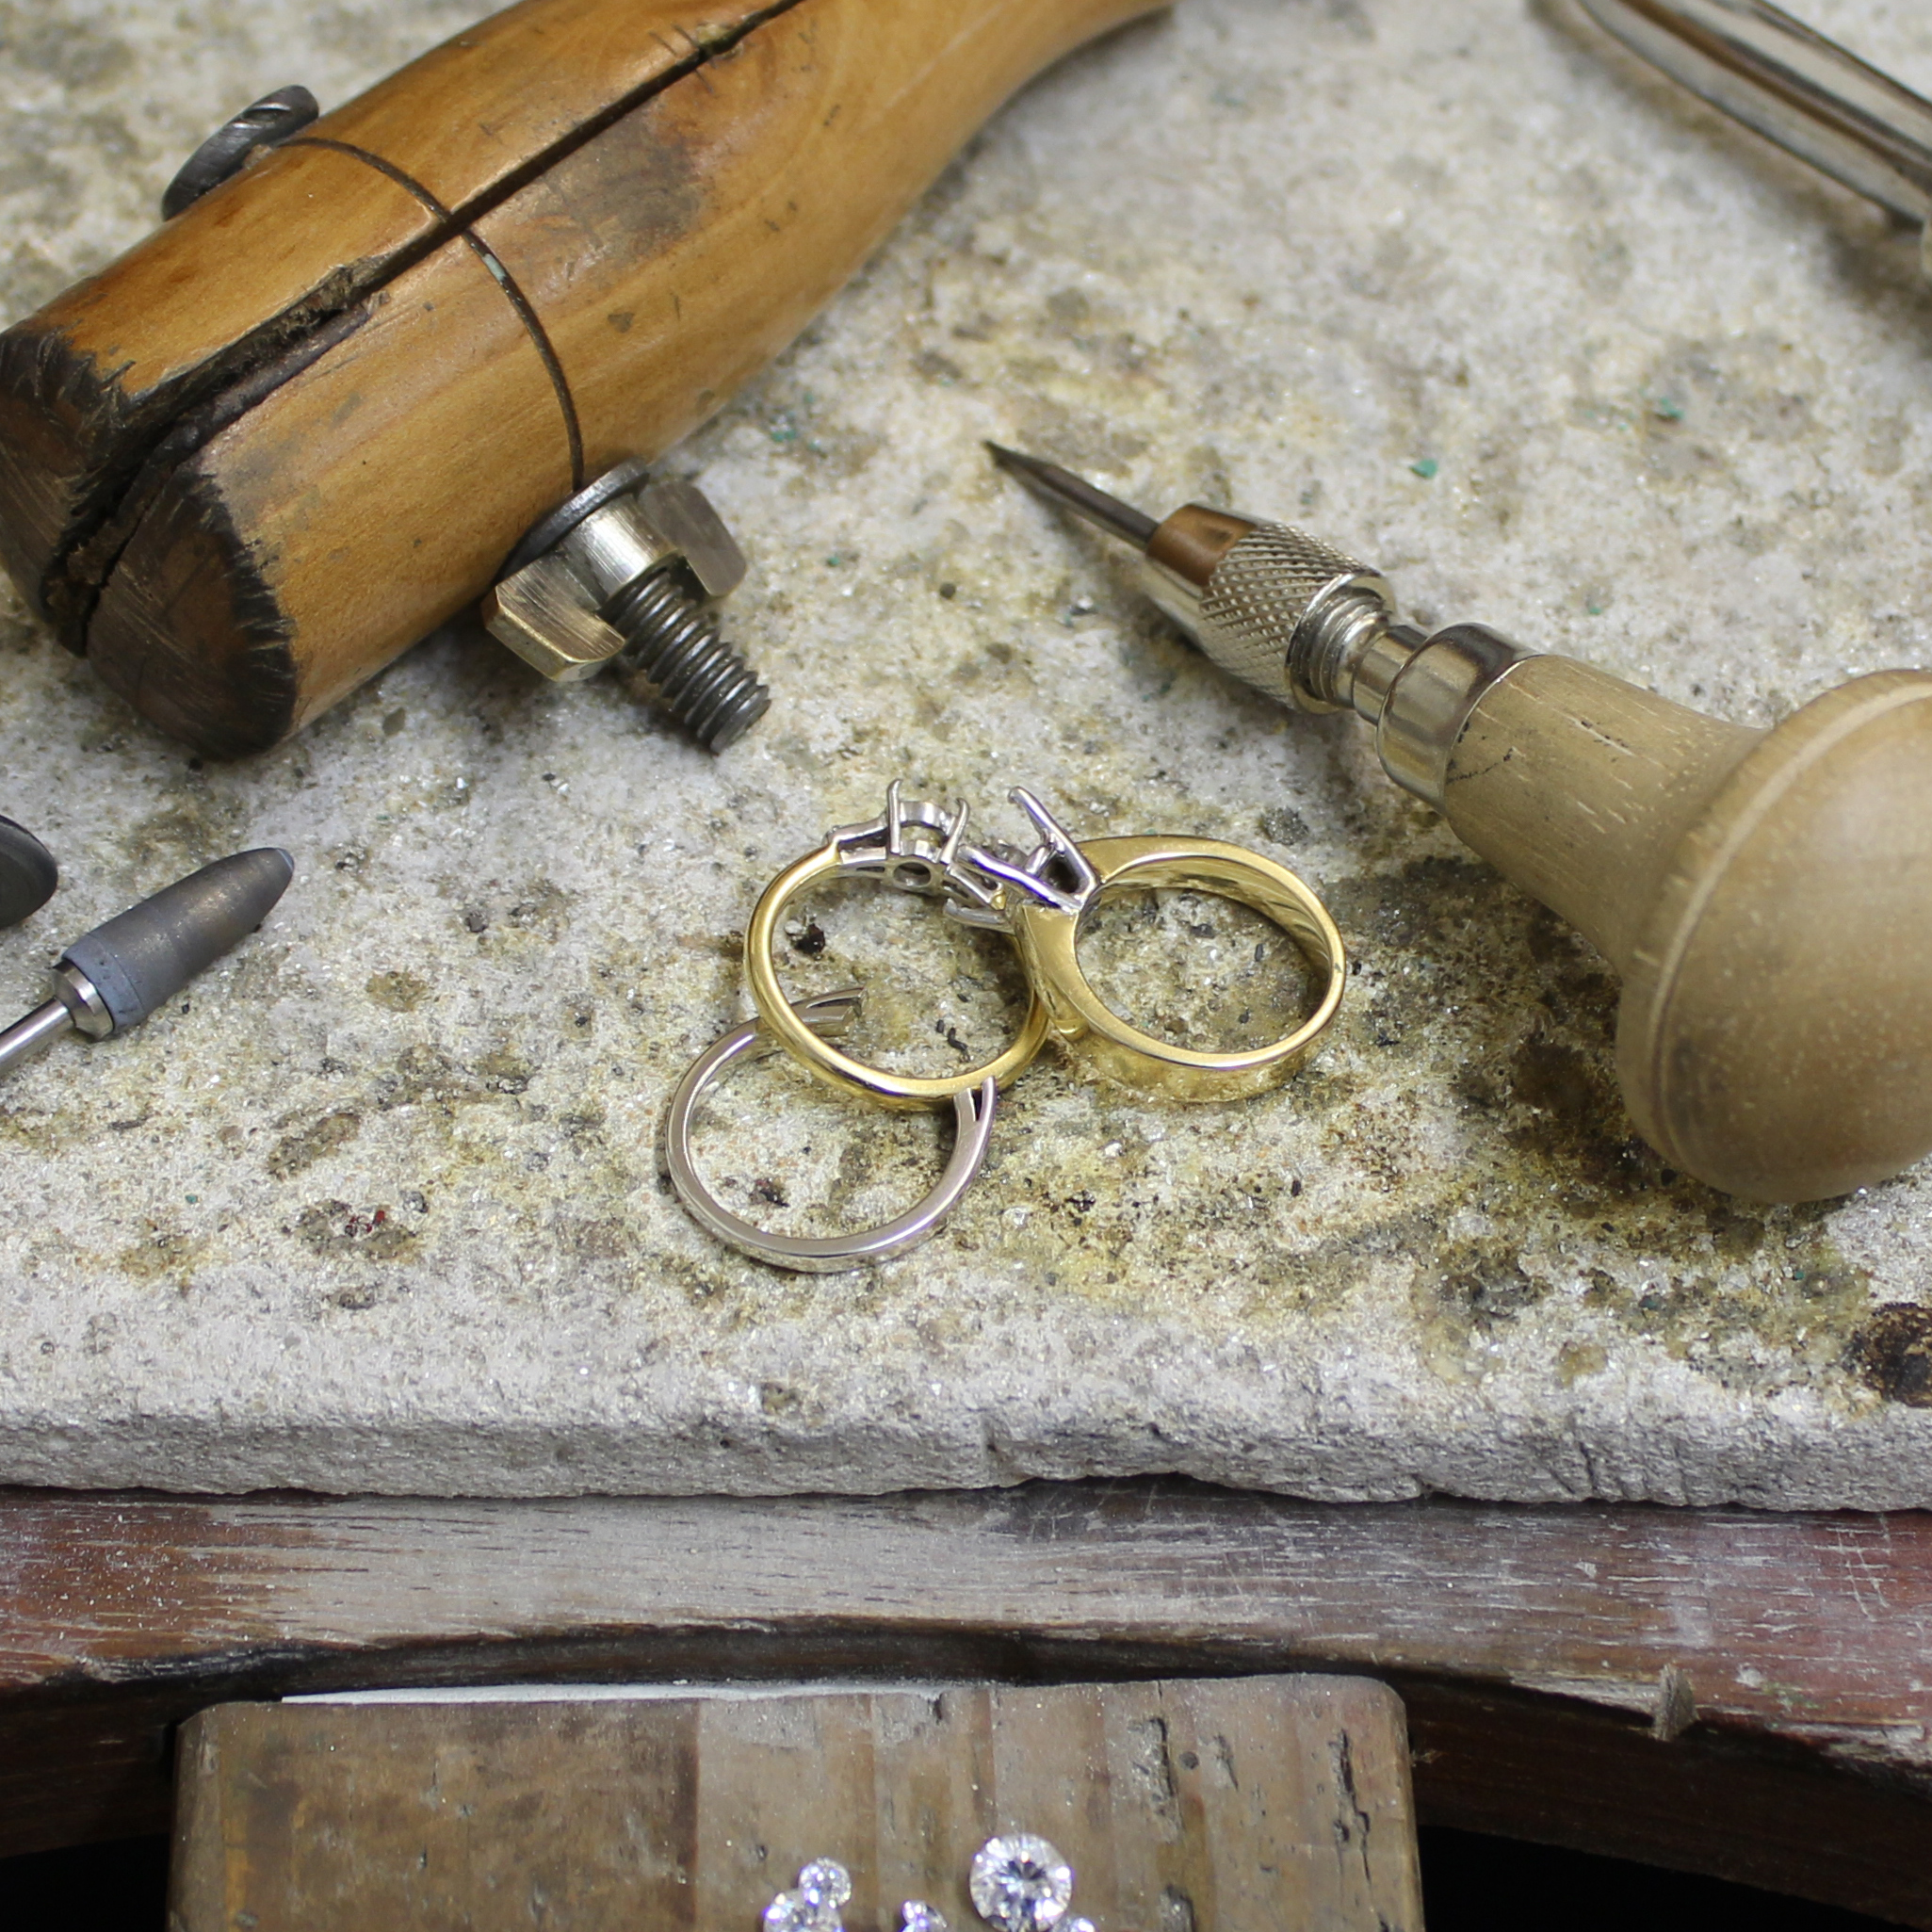 Rings in the process of being made with tools